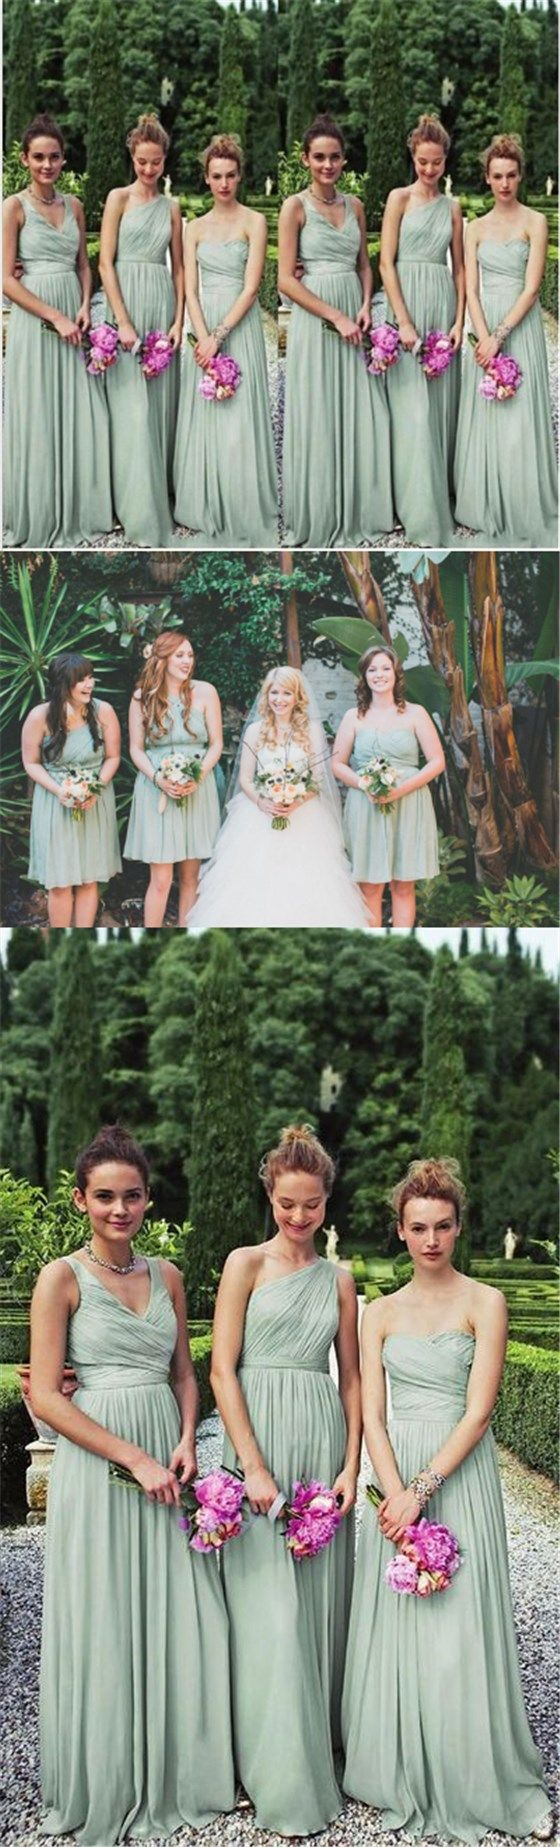 The 25 best lime green bridesmaid dresses ideas on pinterest long bridesmaid dresses lime green bridesmaid dresses mismatched bridesmaid dresses chiffon bridesmaid dresses ombrellifo Images